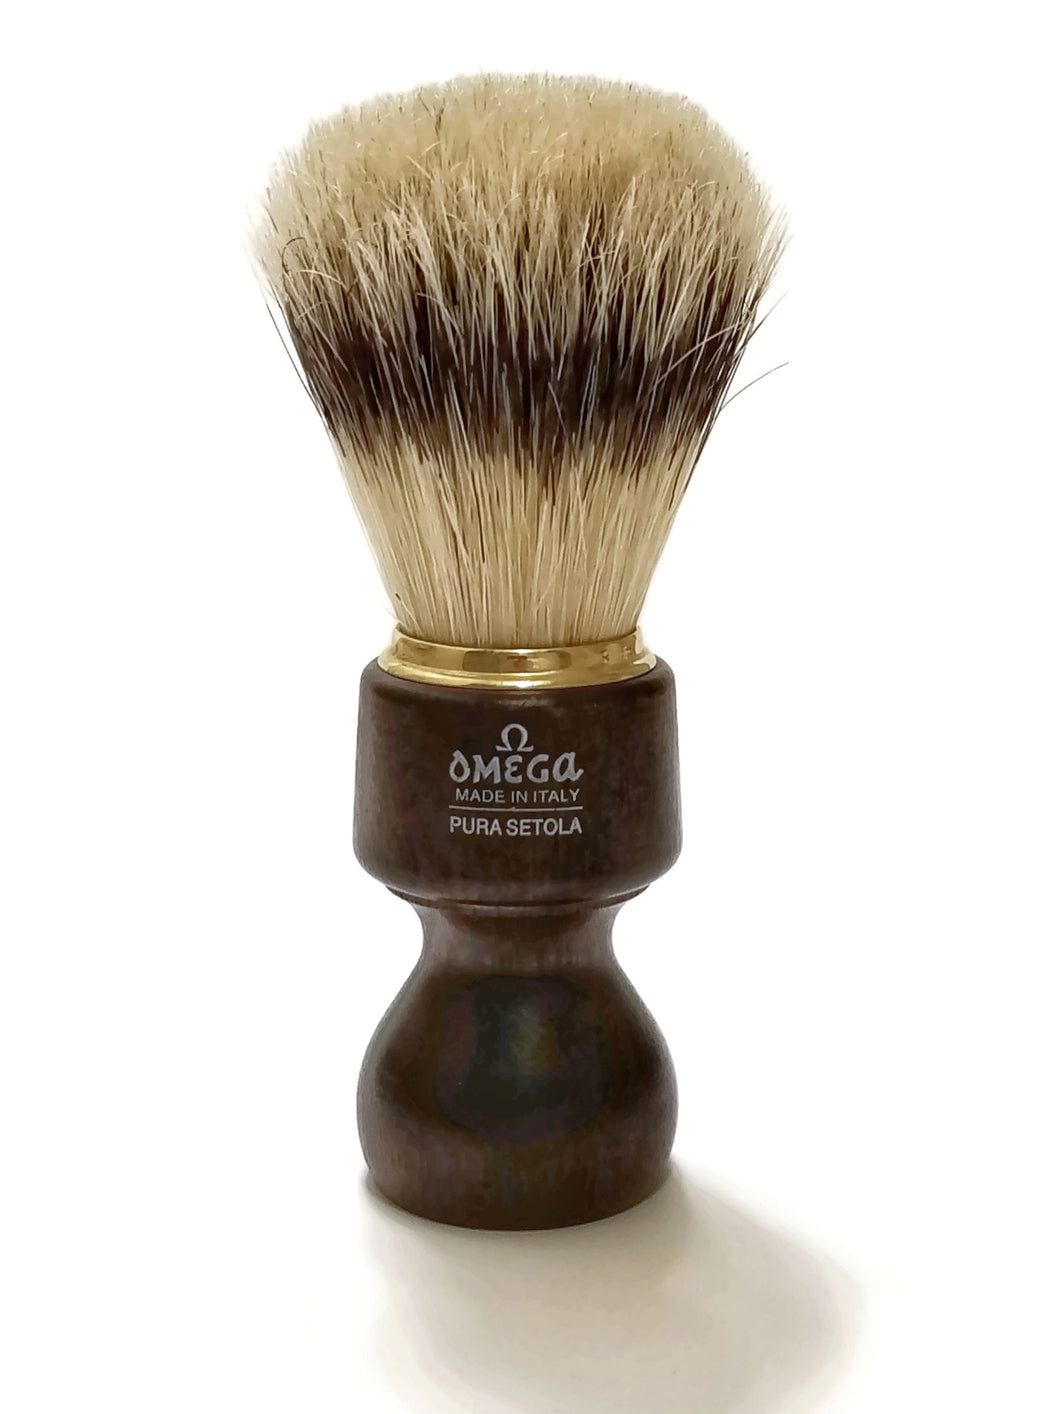 Omega 11126 Boar Bristle Shaving Brush